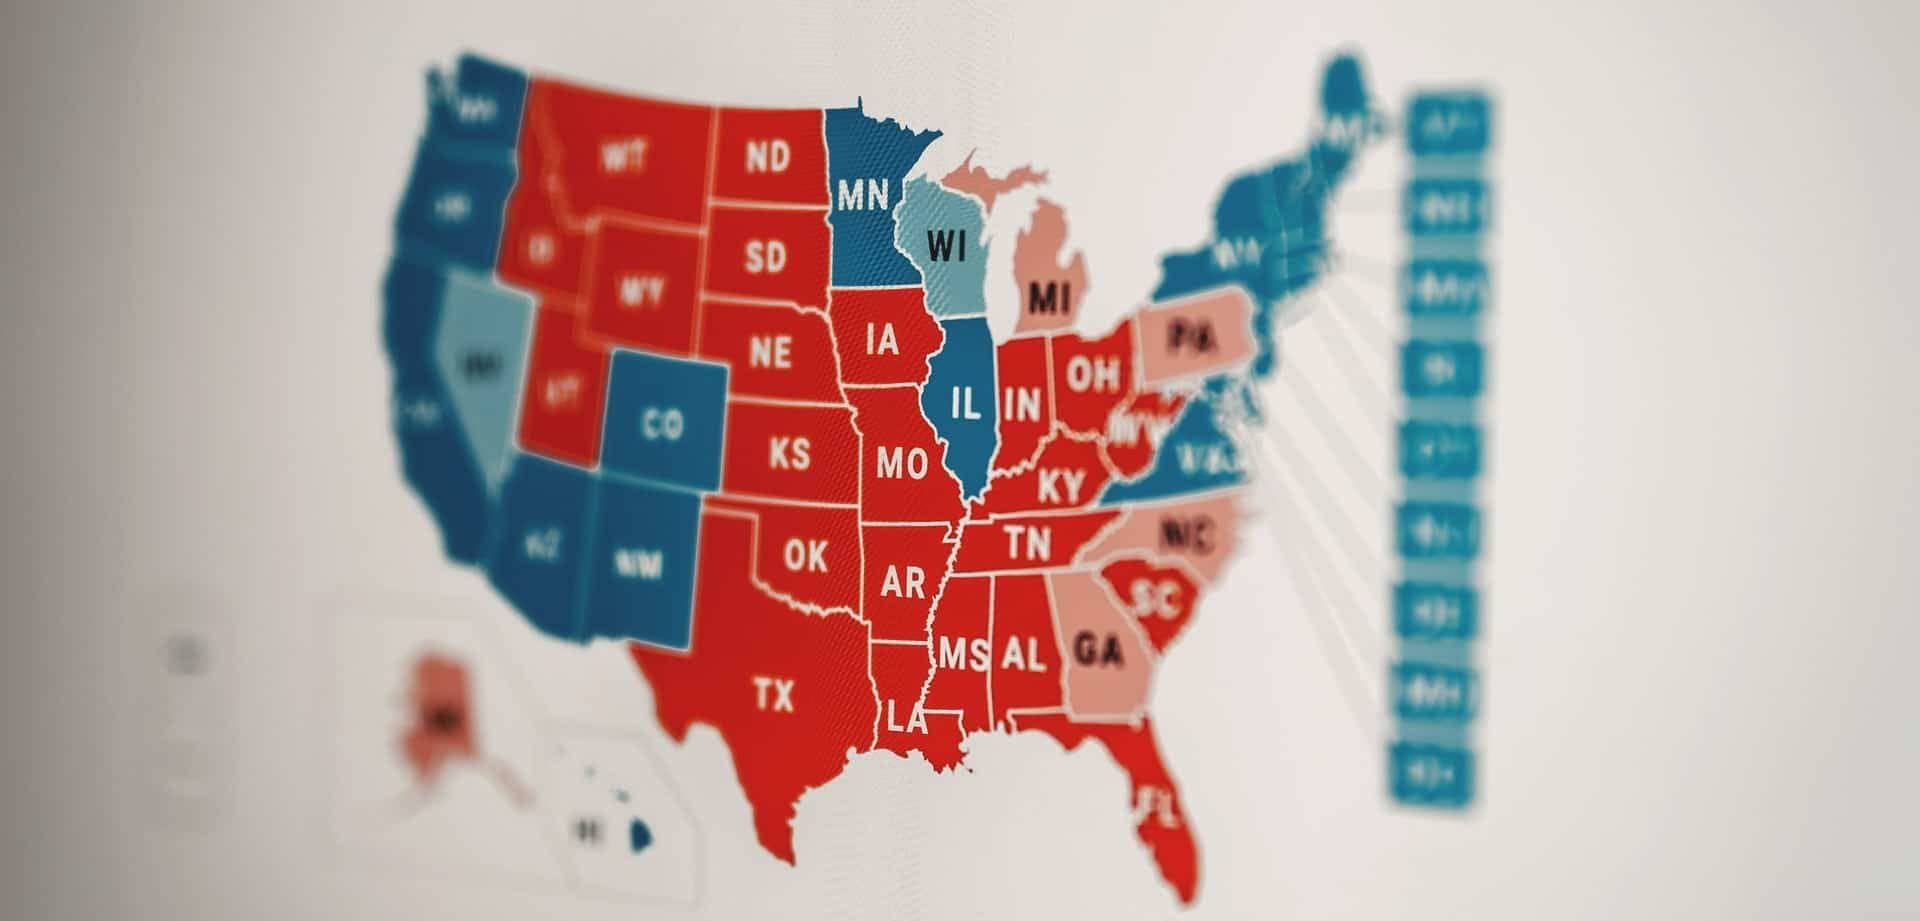 Are prayers for God to overturn the election valid?